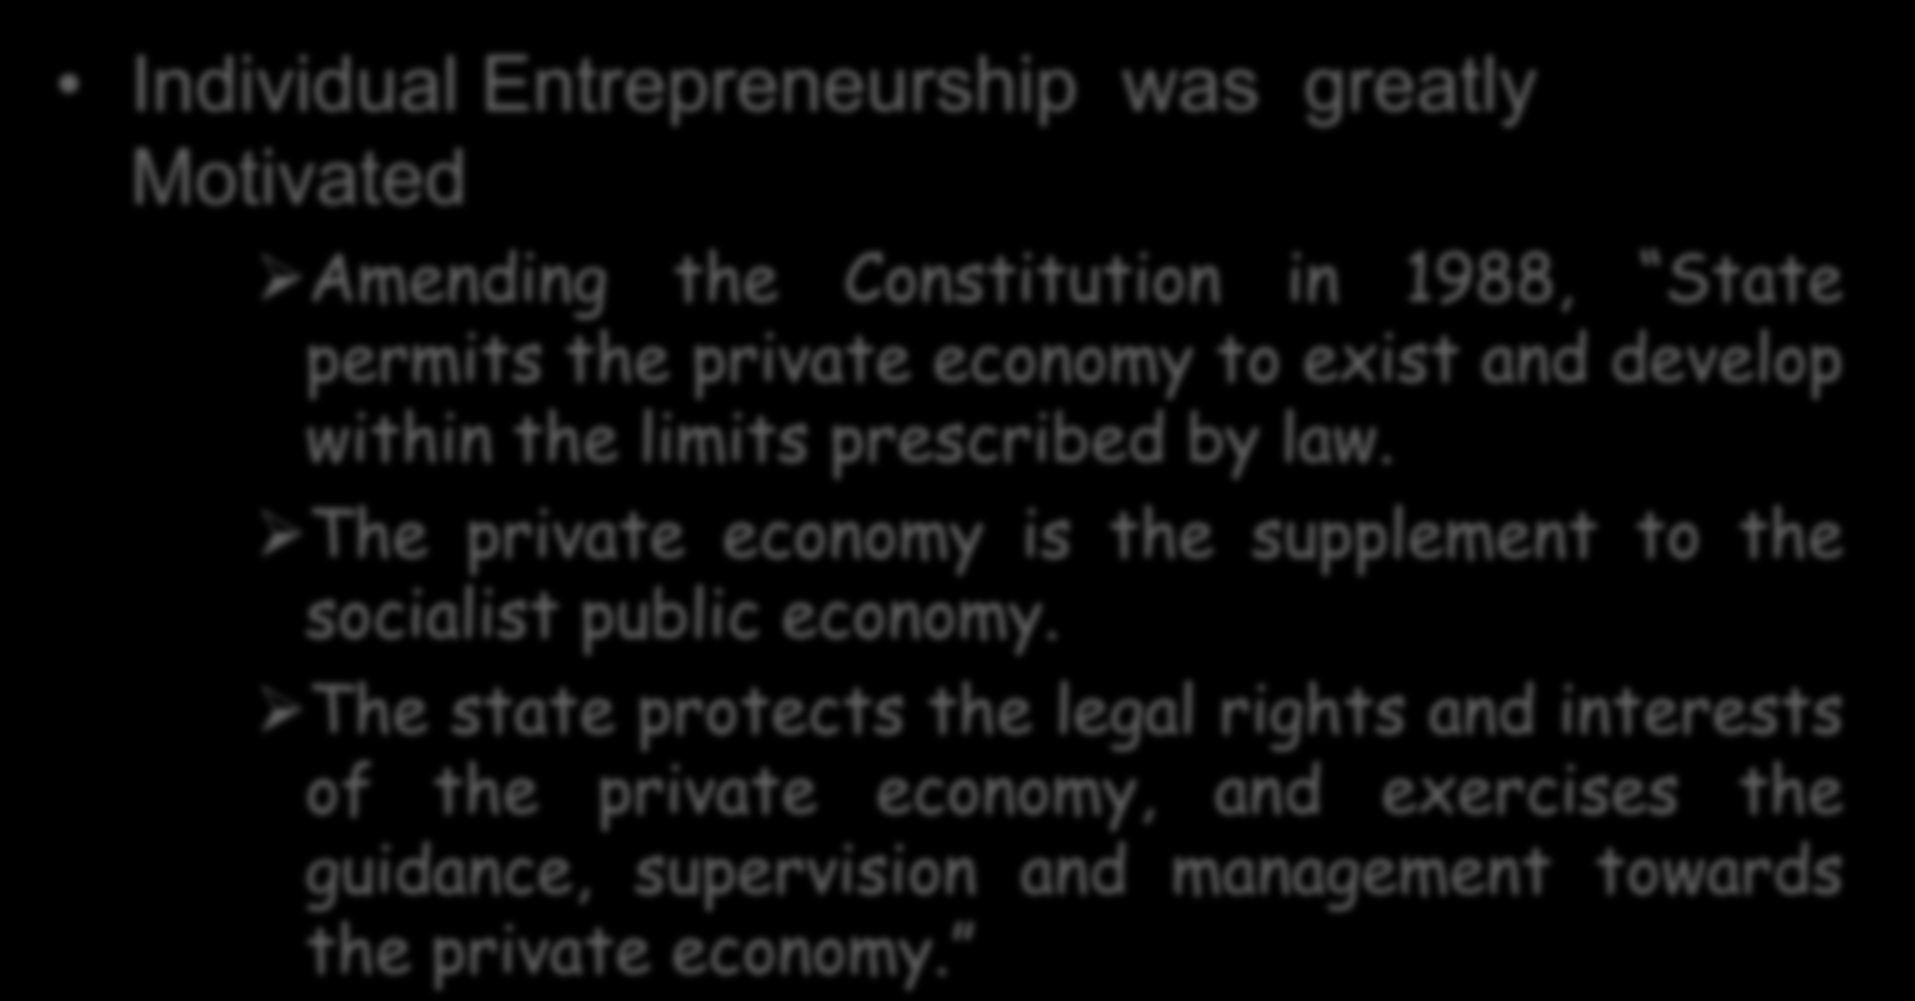 Individual Entrepreneurship was greatly Motivated Amending the Constitution in 1988, State permits the private economy to exist and develop within the limits prescribed by law.